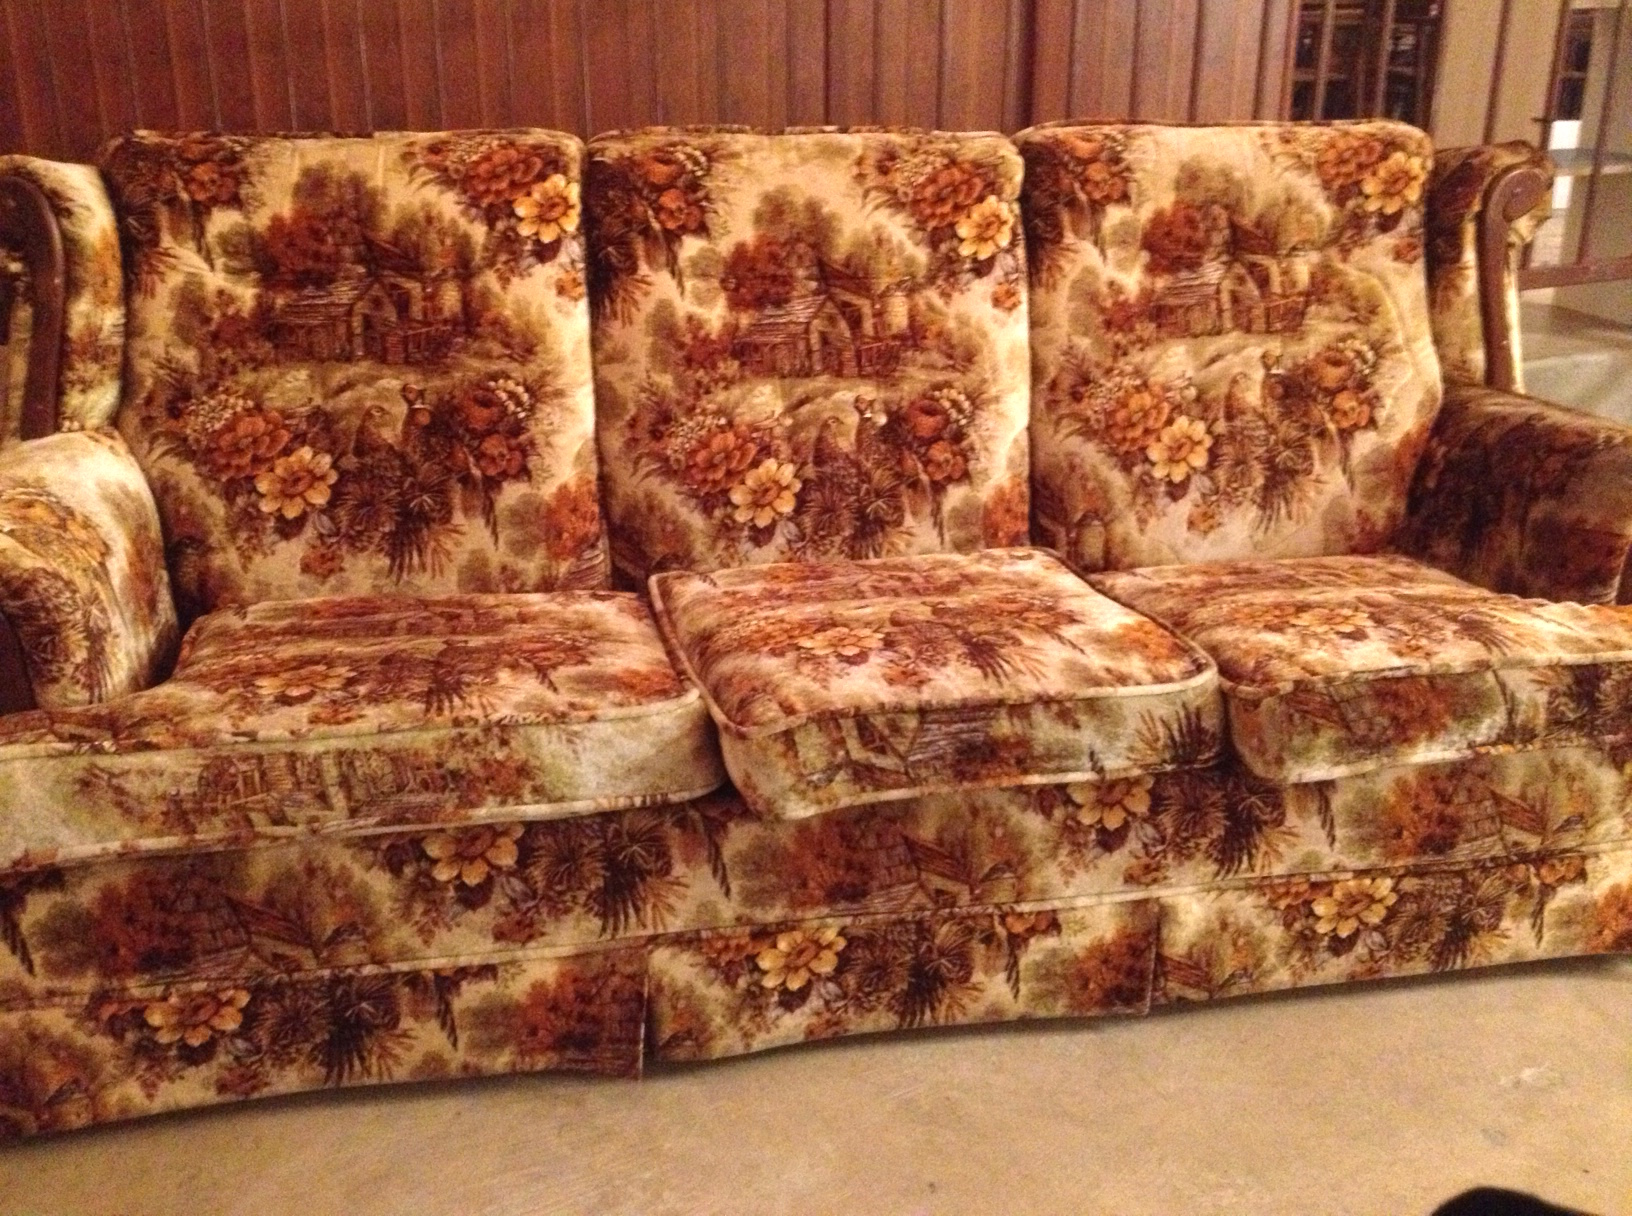 Big Sofa Vintage Look It Came From The 70s The Story Of Your Grandmas Weird